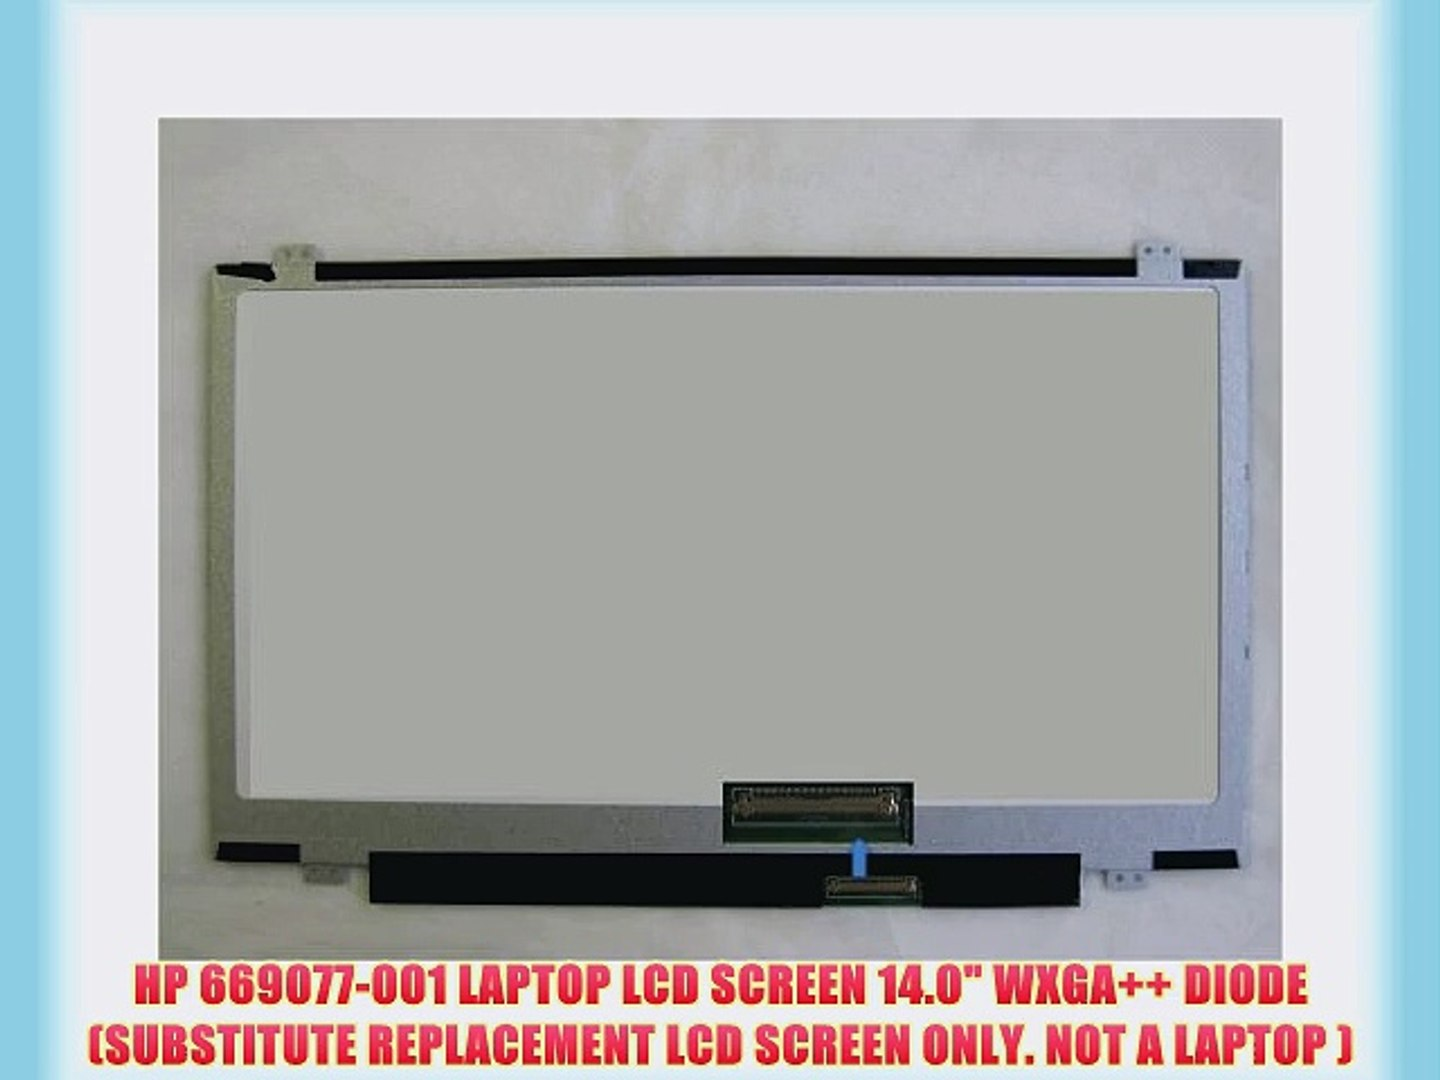 SUBSTITUTE REPLACEMENT LCD SCREEN ONLY. NOT A LAPTOP DIODE DELL MJ154 LAPTOP LCD SCREEN 14.0 WXGA+